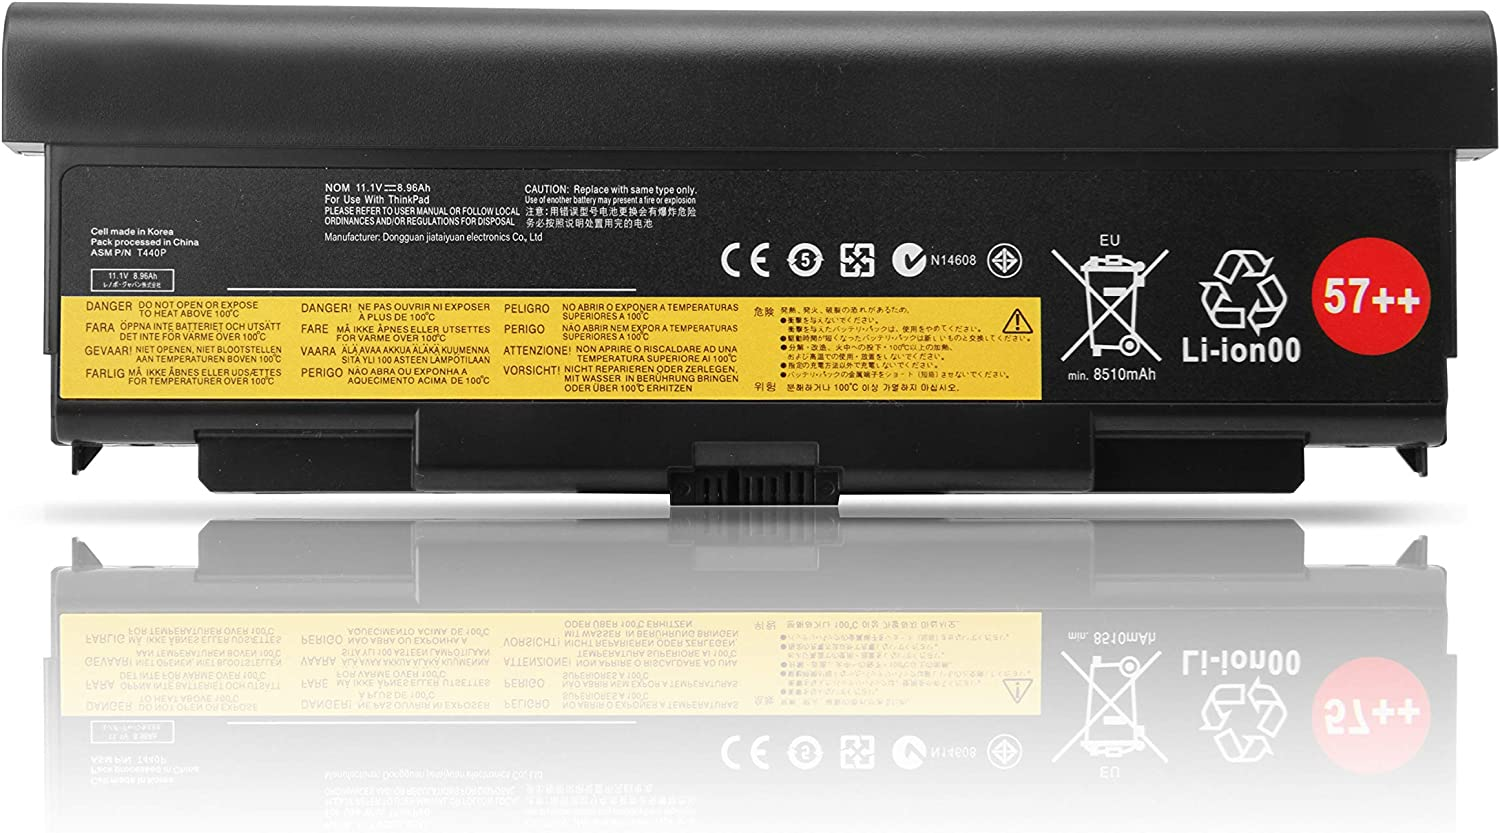 Fully New 57++ Replacement Laptop Battery Compatible with Lenovo ThinkPad T440P T540P W540 W541 L440 L540 45N1152 45N1153 0C52864-9 Cell 11.1V 8510mAh